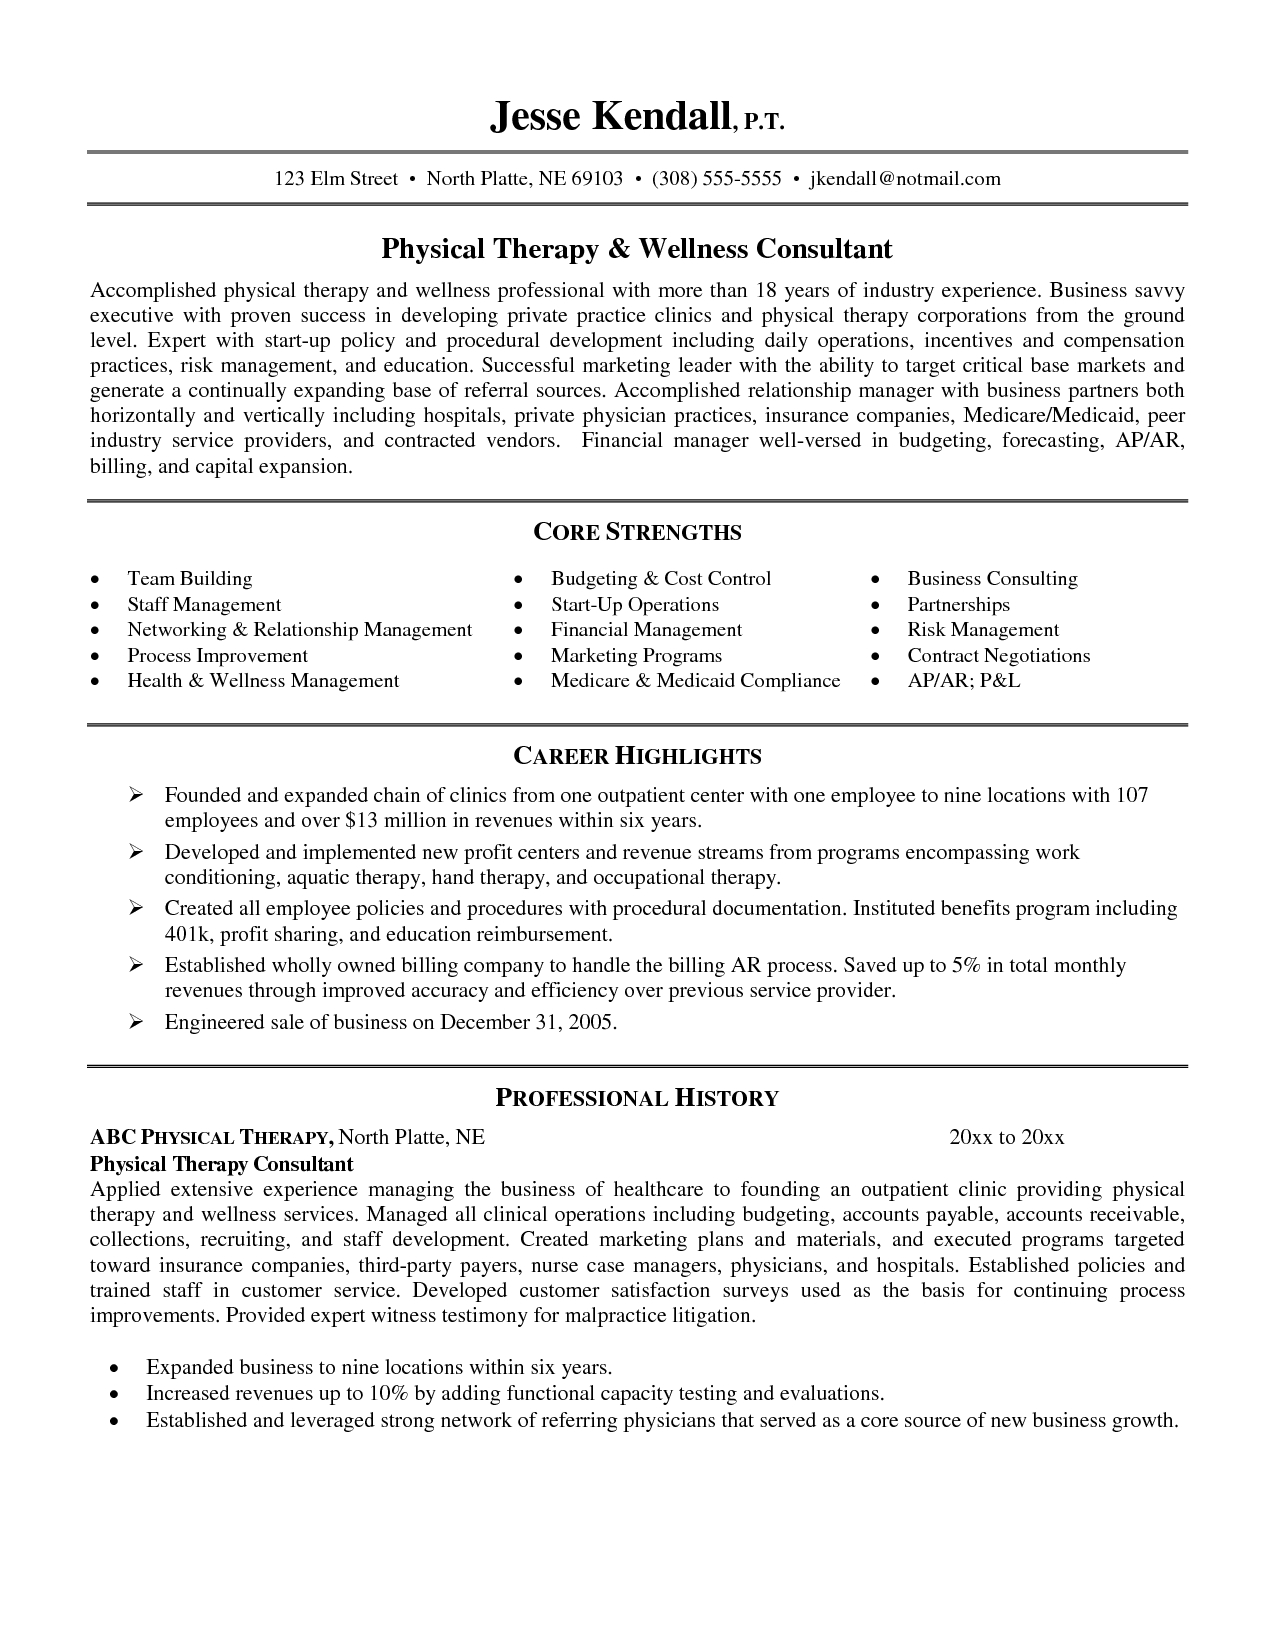 medical assistant job resume sample professional resume cover medical assistant job resume sample medical assistant resume sample career enter assistant resume examples assistant physical